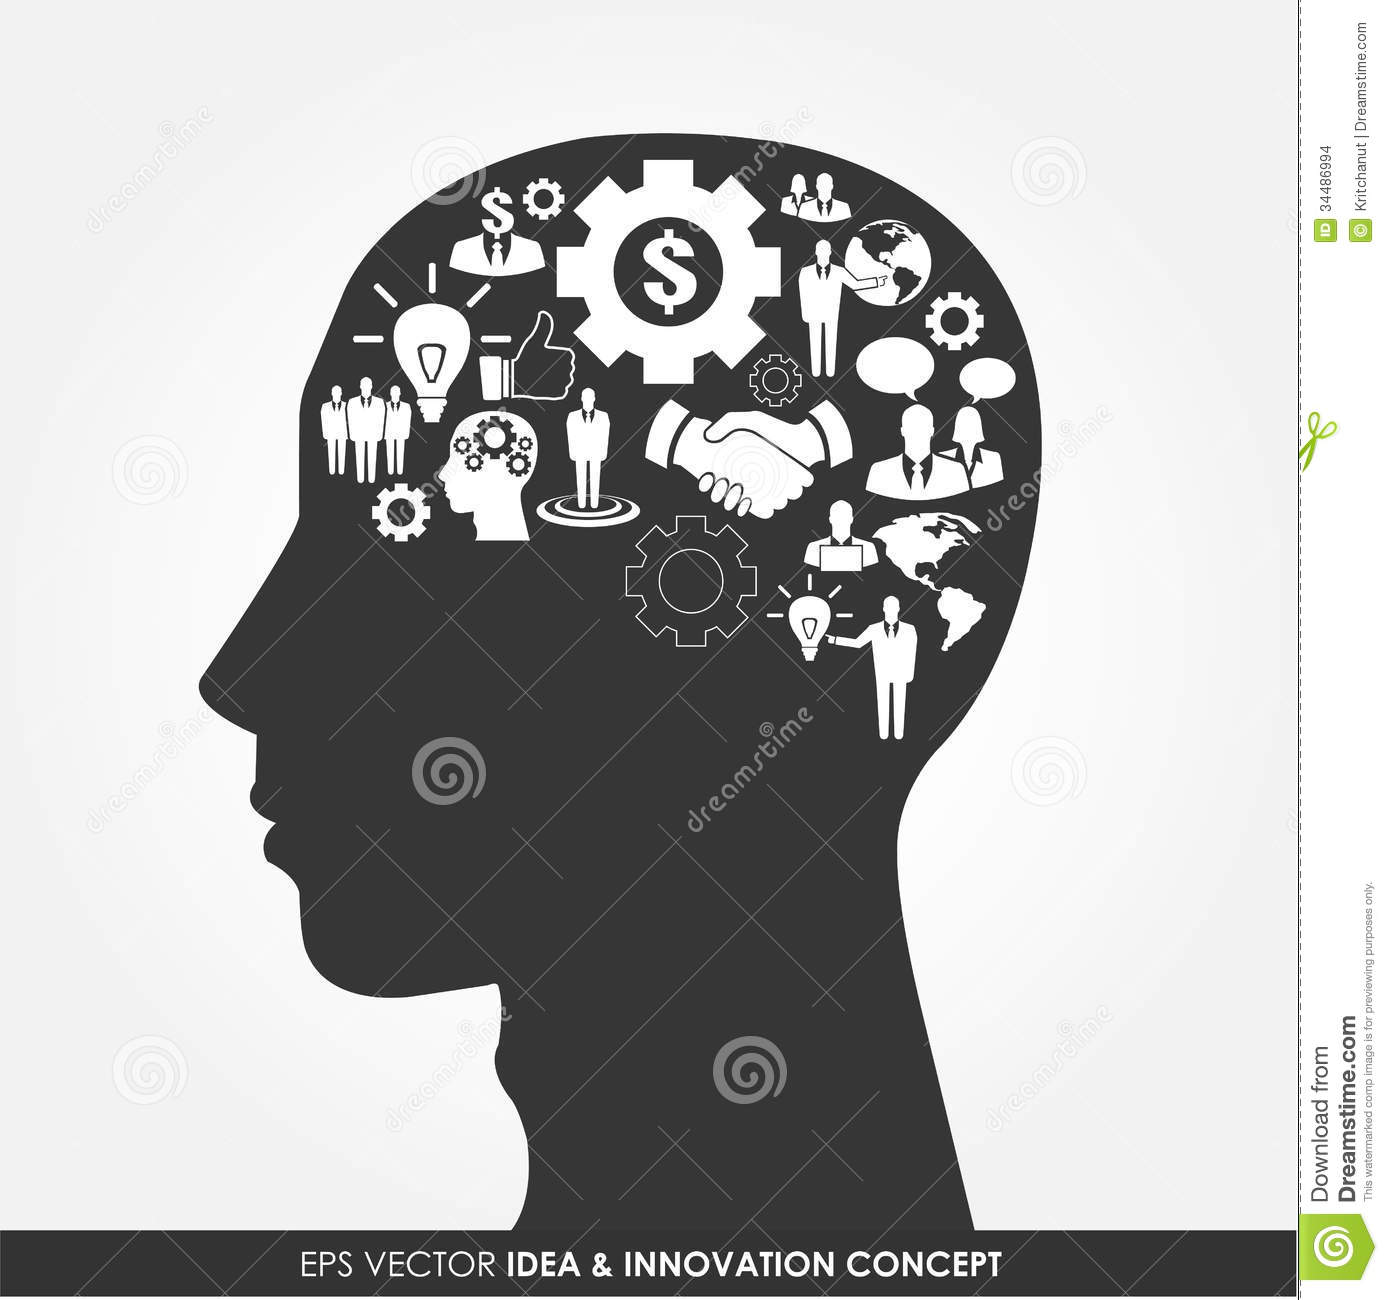 Abstract Human Head Silhouette Stock Vector - Illustration of ... for Innovation Icon Png  10lpwja